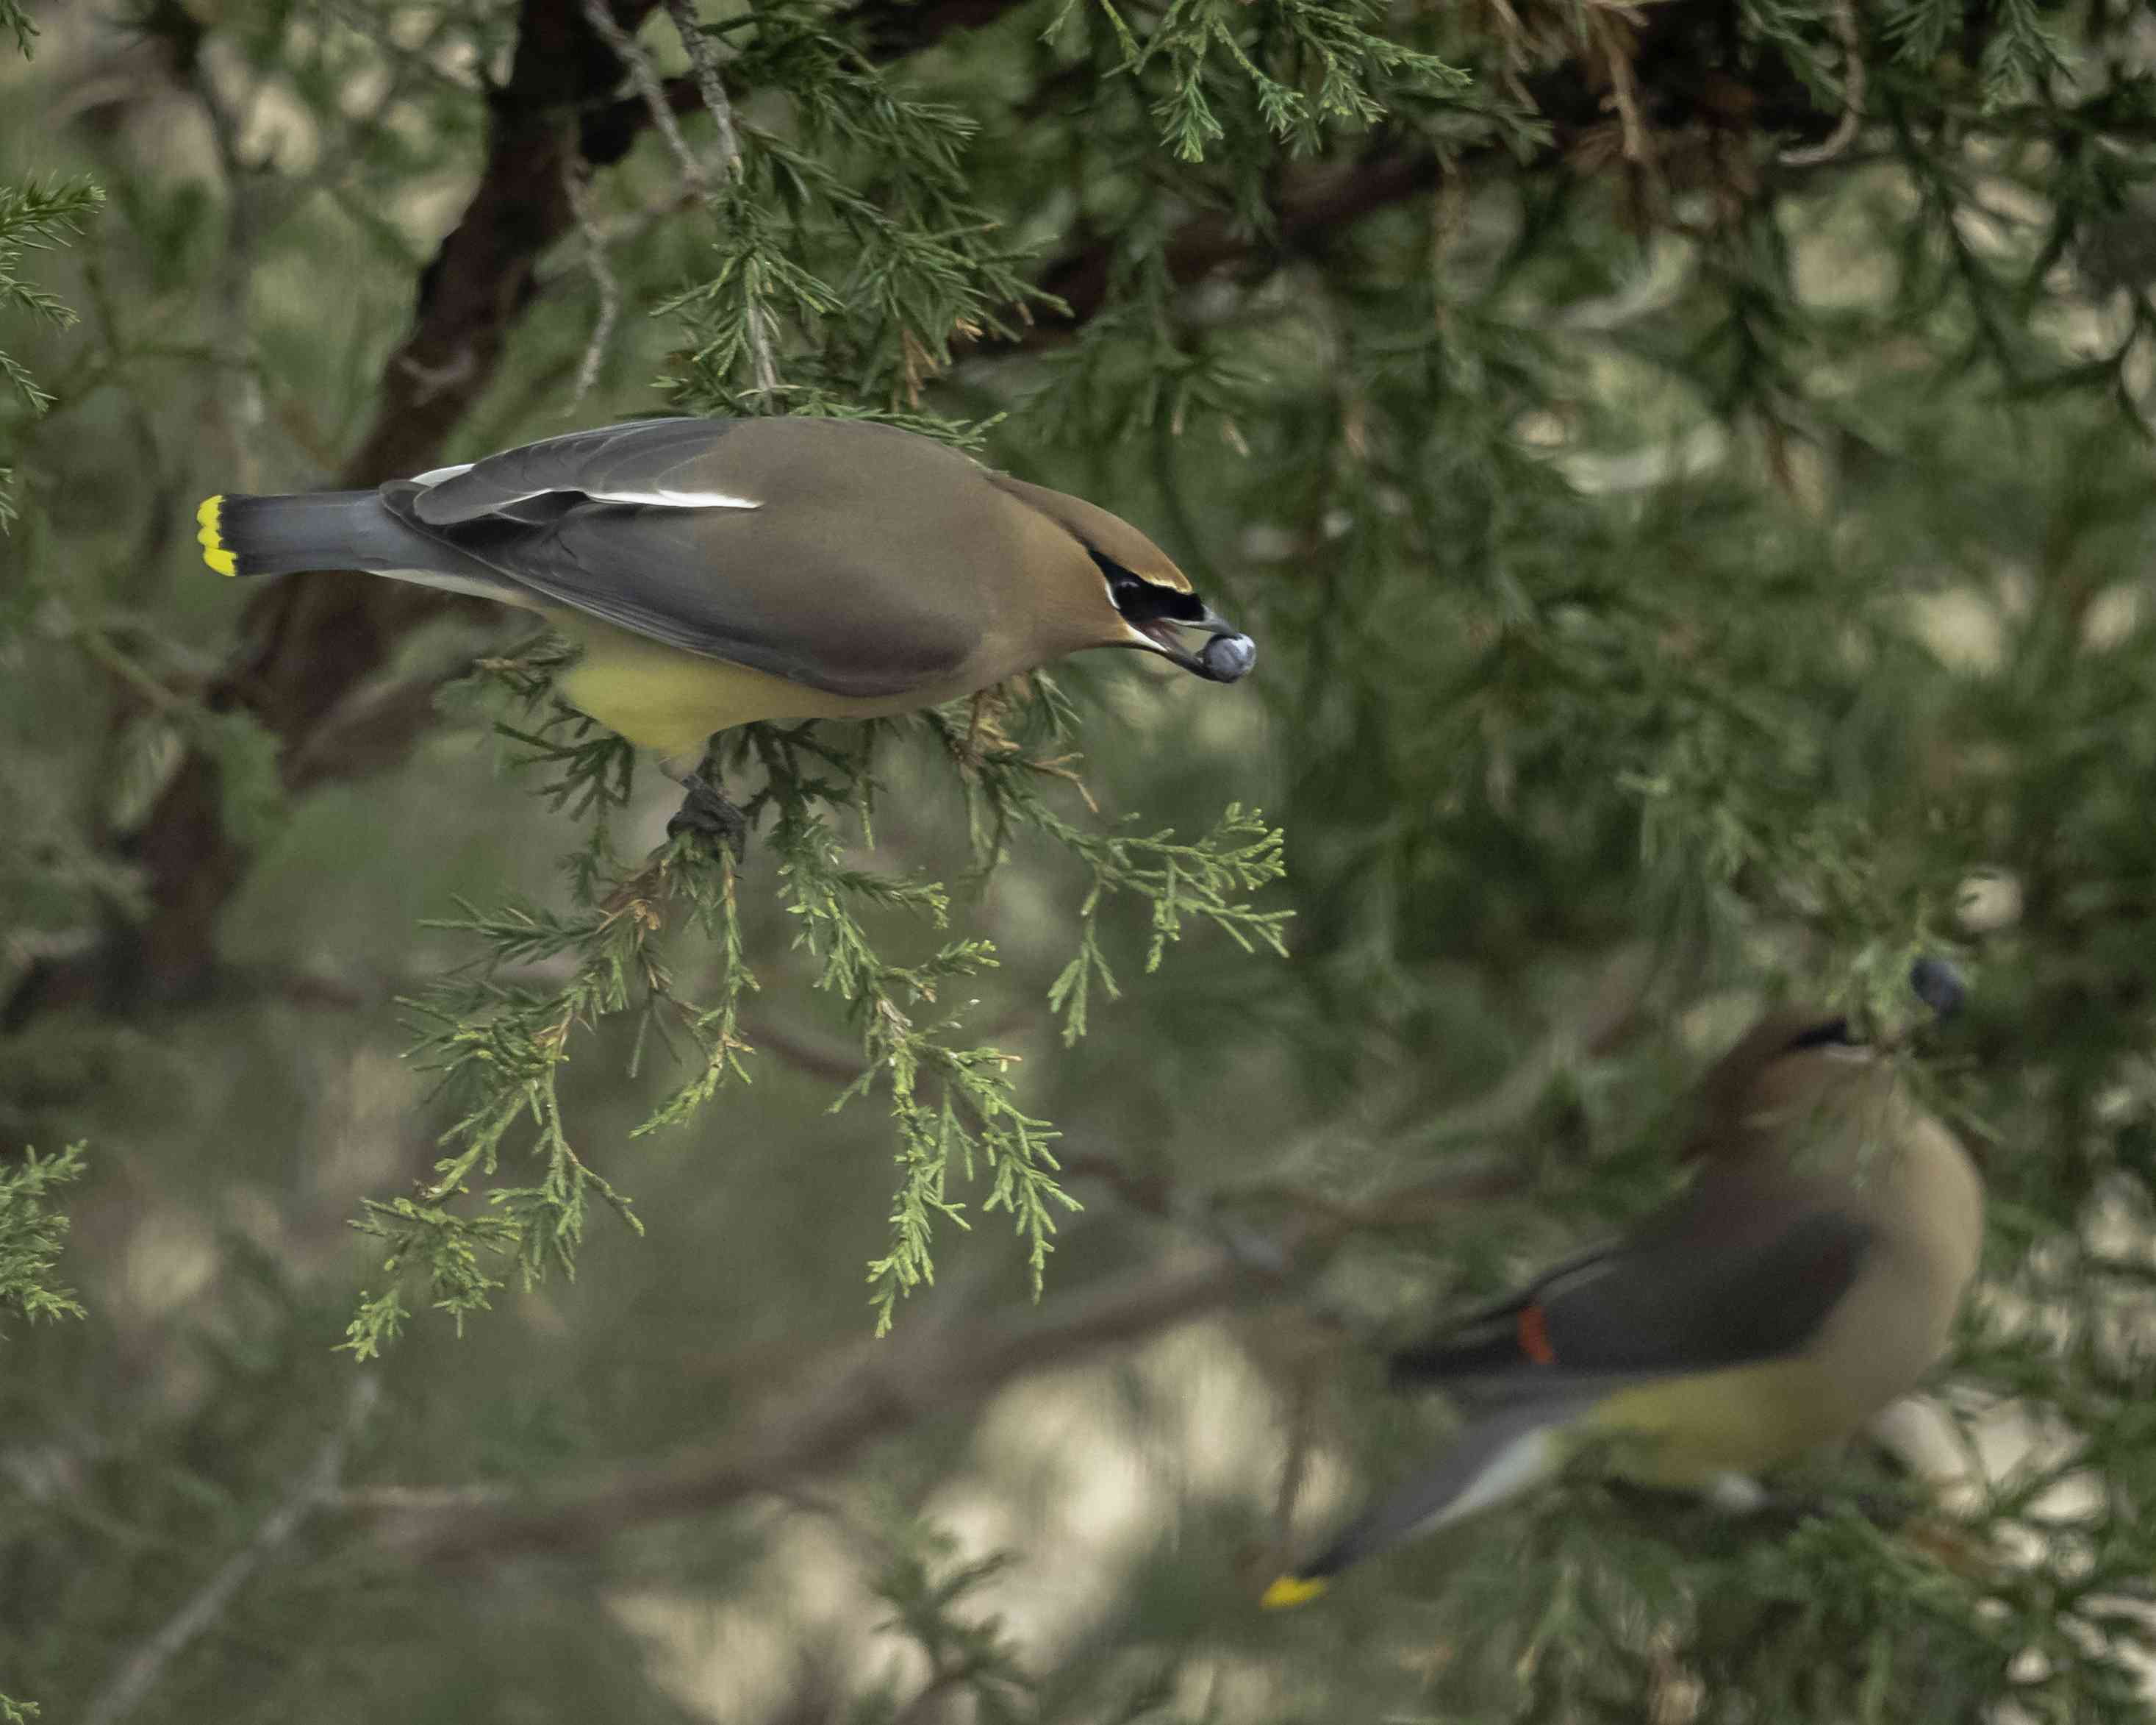 Two brown and yellow birds eating juniper berries.